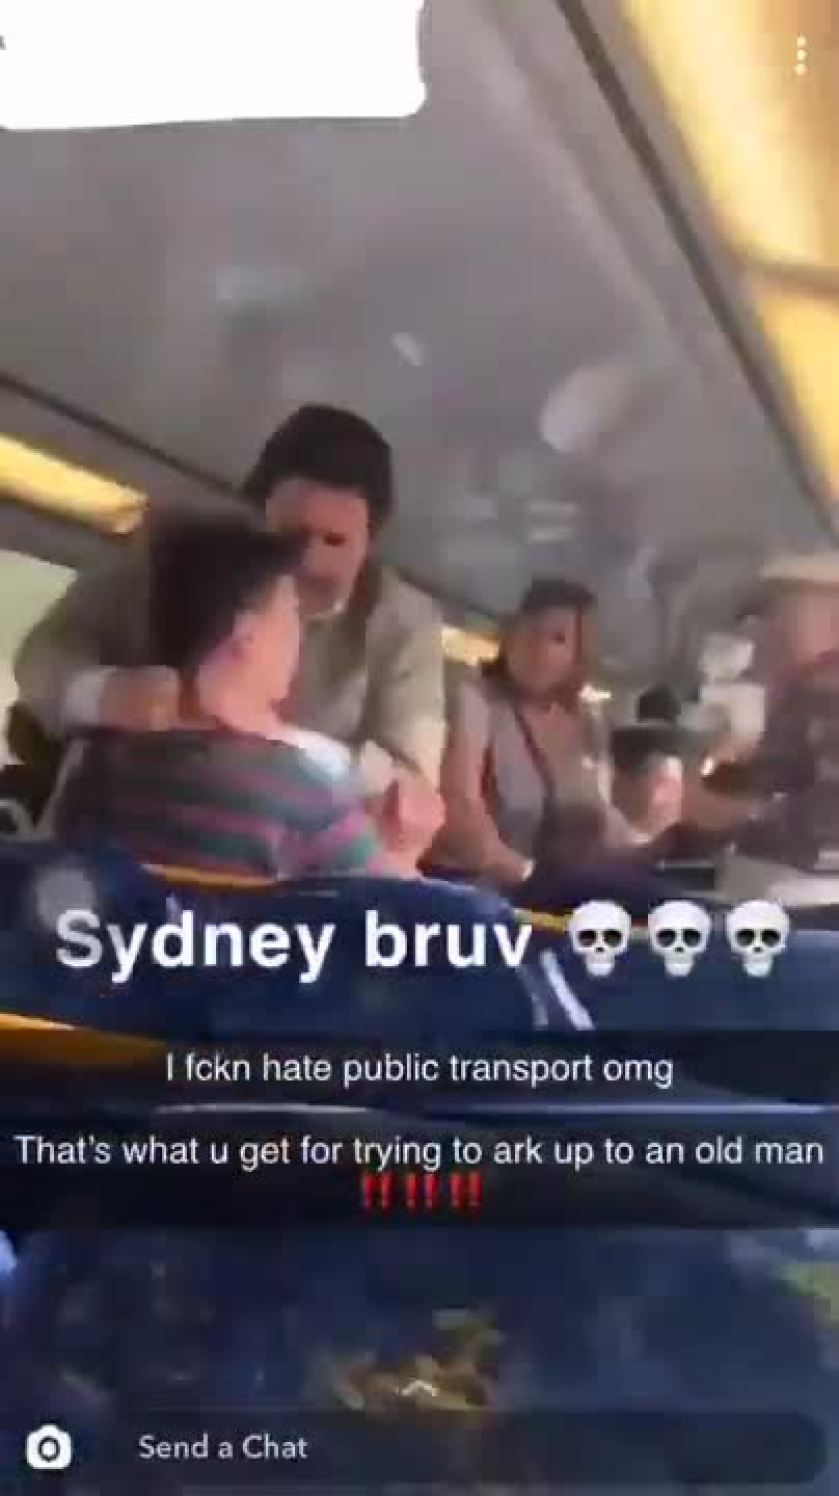 teenager threatens to 'crack' old man on sydney train, gets dealt with by other passengers